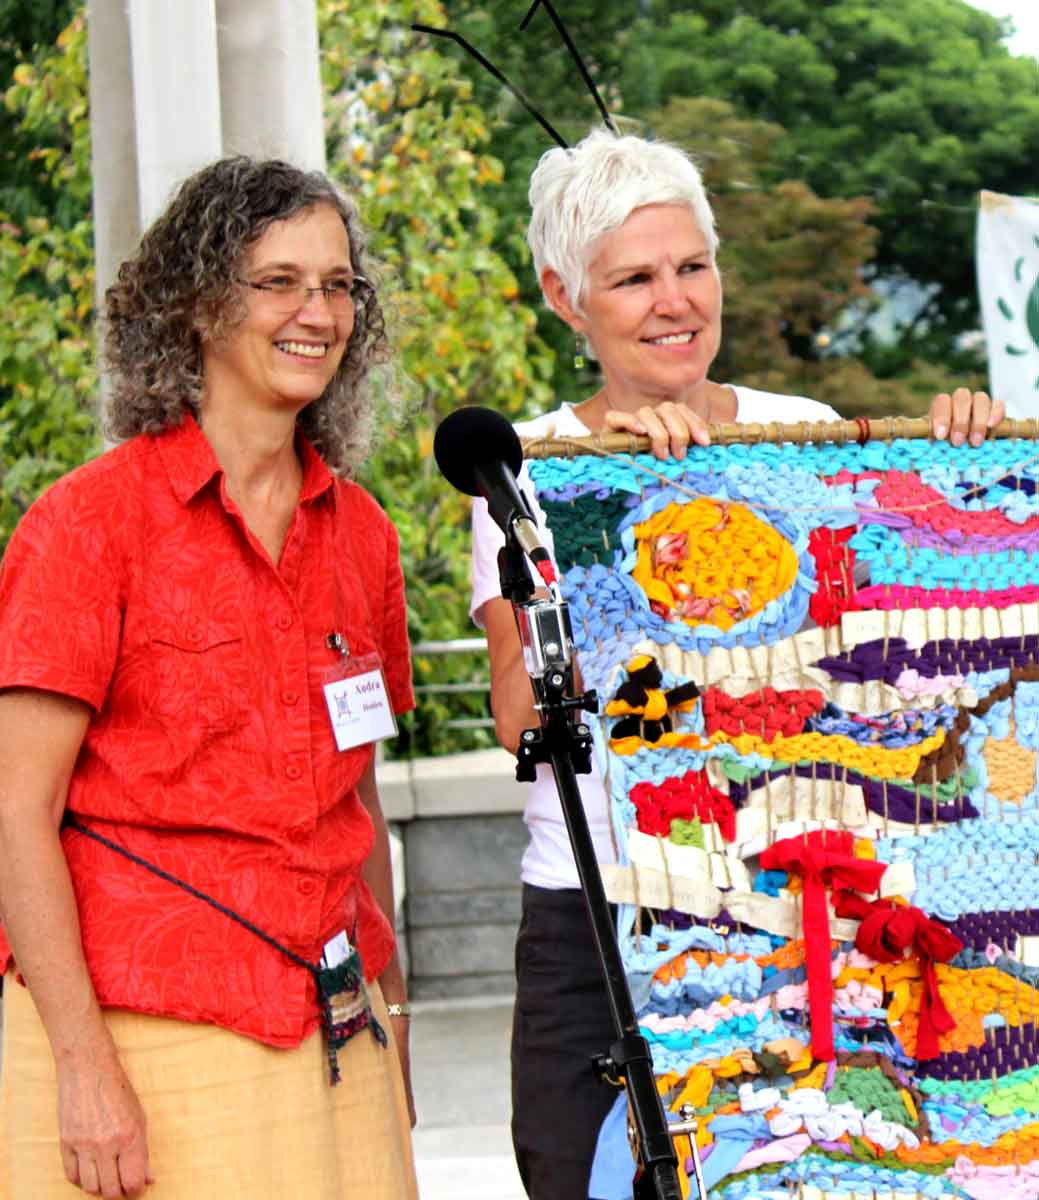 audra-holden-presenting-the-earthloom-tapestry-created-by-organicfest-guests